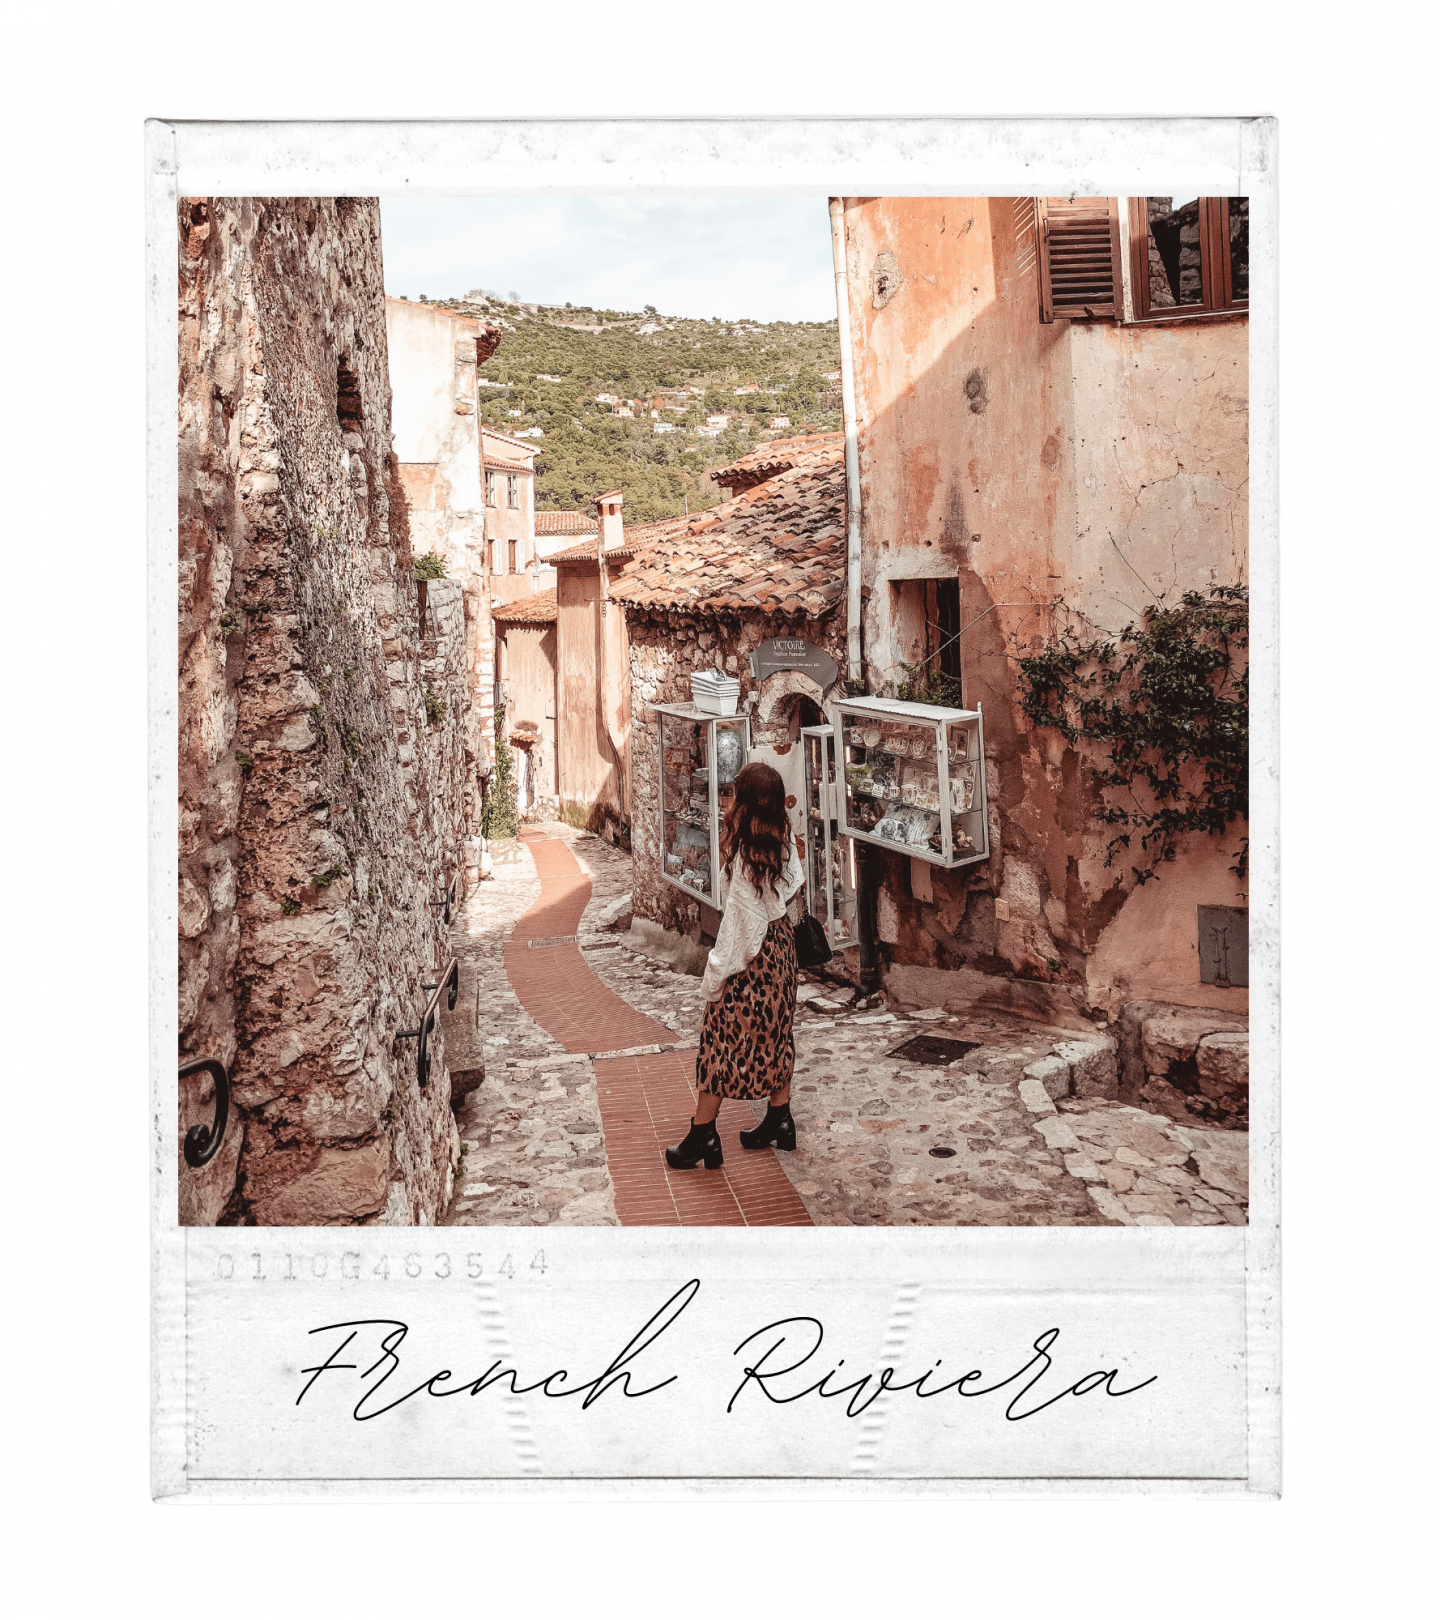 Itinerary for 2 Days on the French Riviera